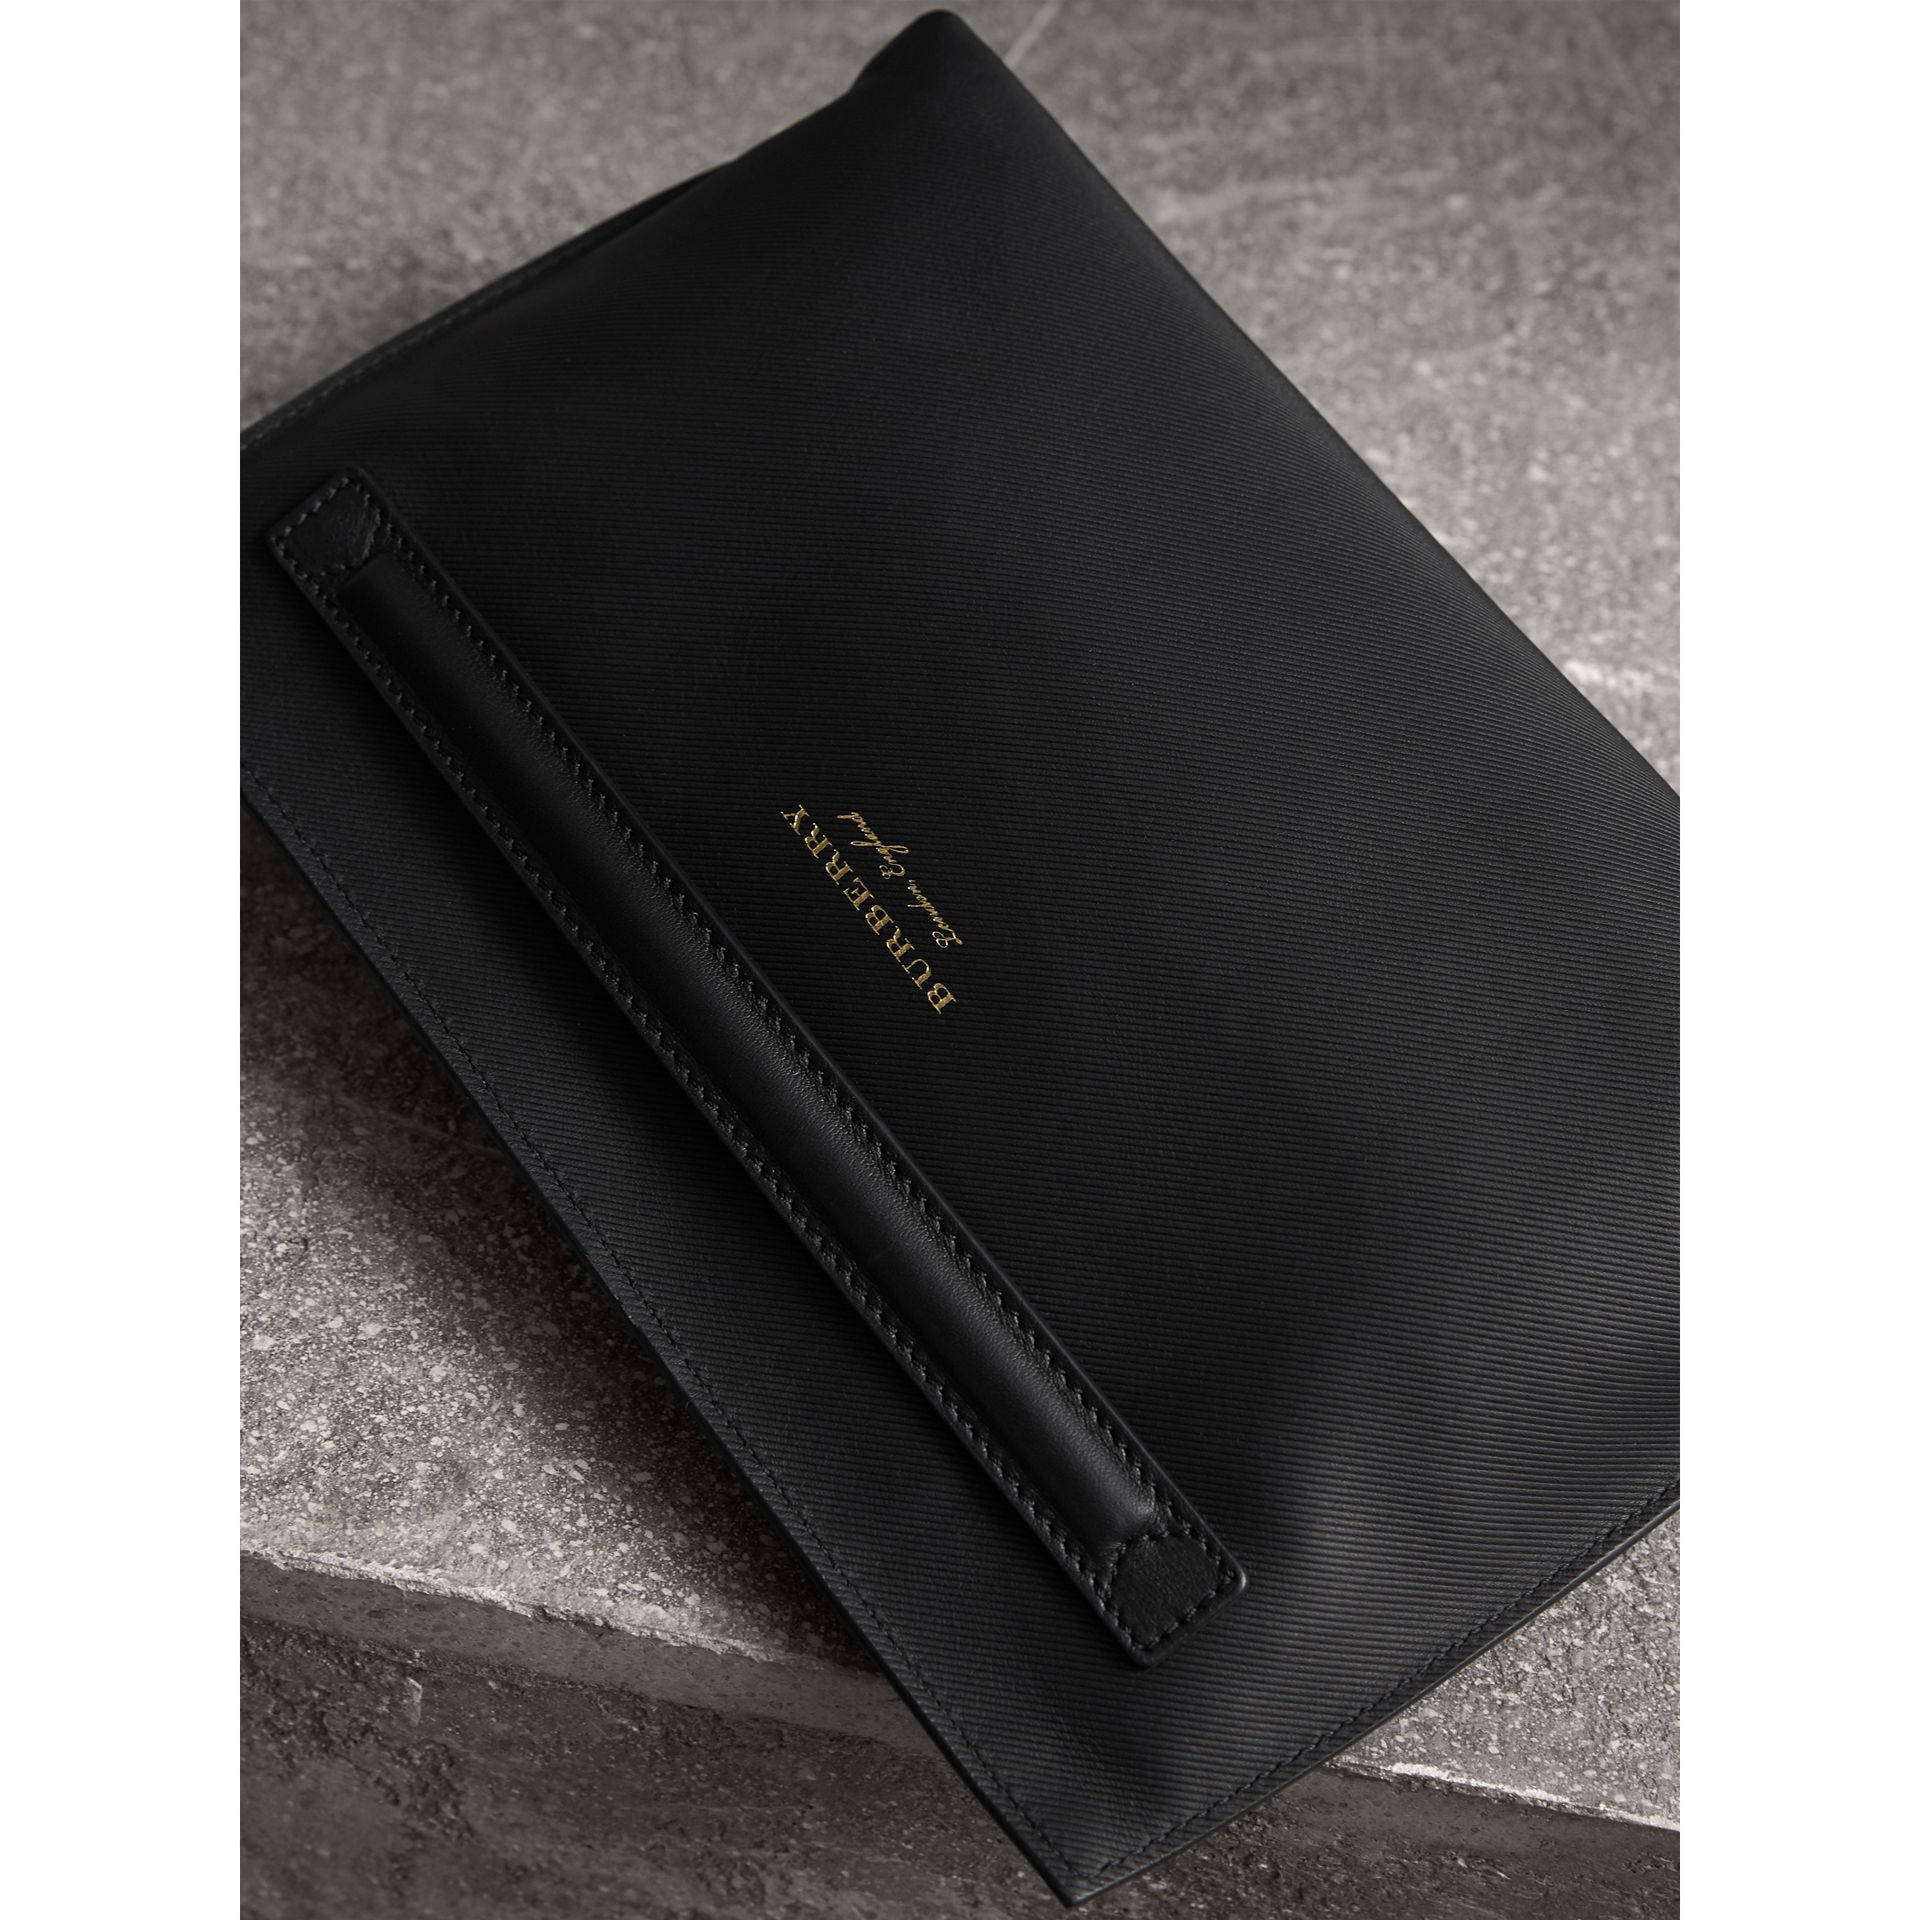 Trench Leather Wristlet Pouch in Black - Women | Burberry - gallery image 4